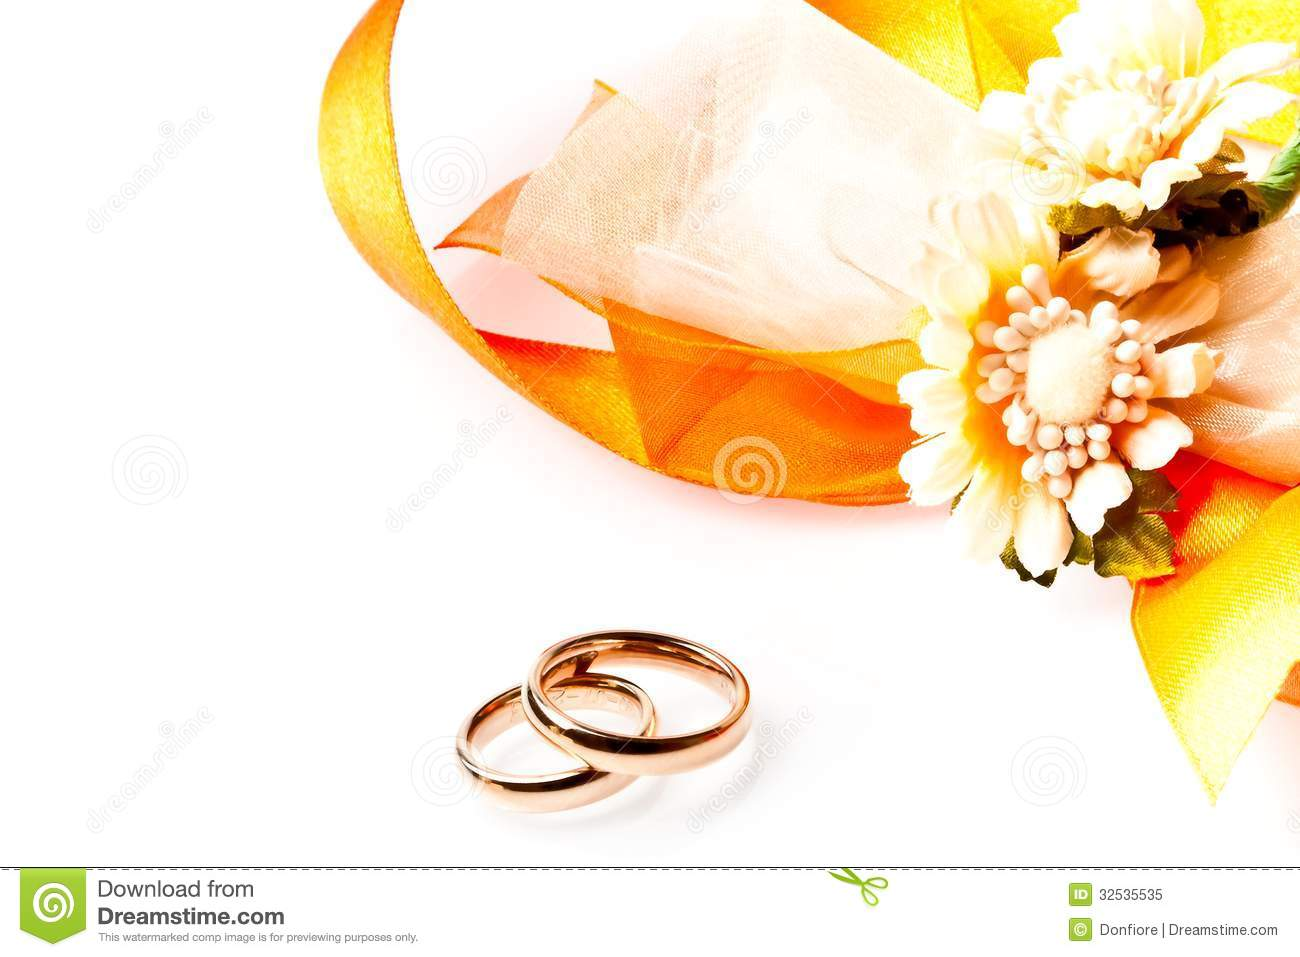 Gold Wedding Rings Near Ribbon And Flowers With Space For ...